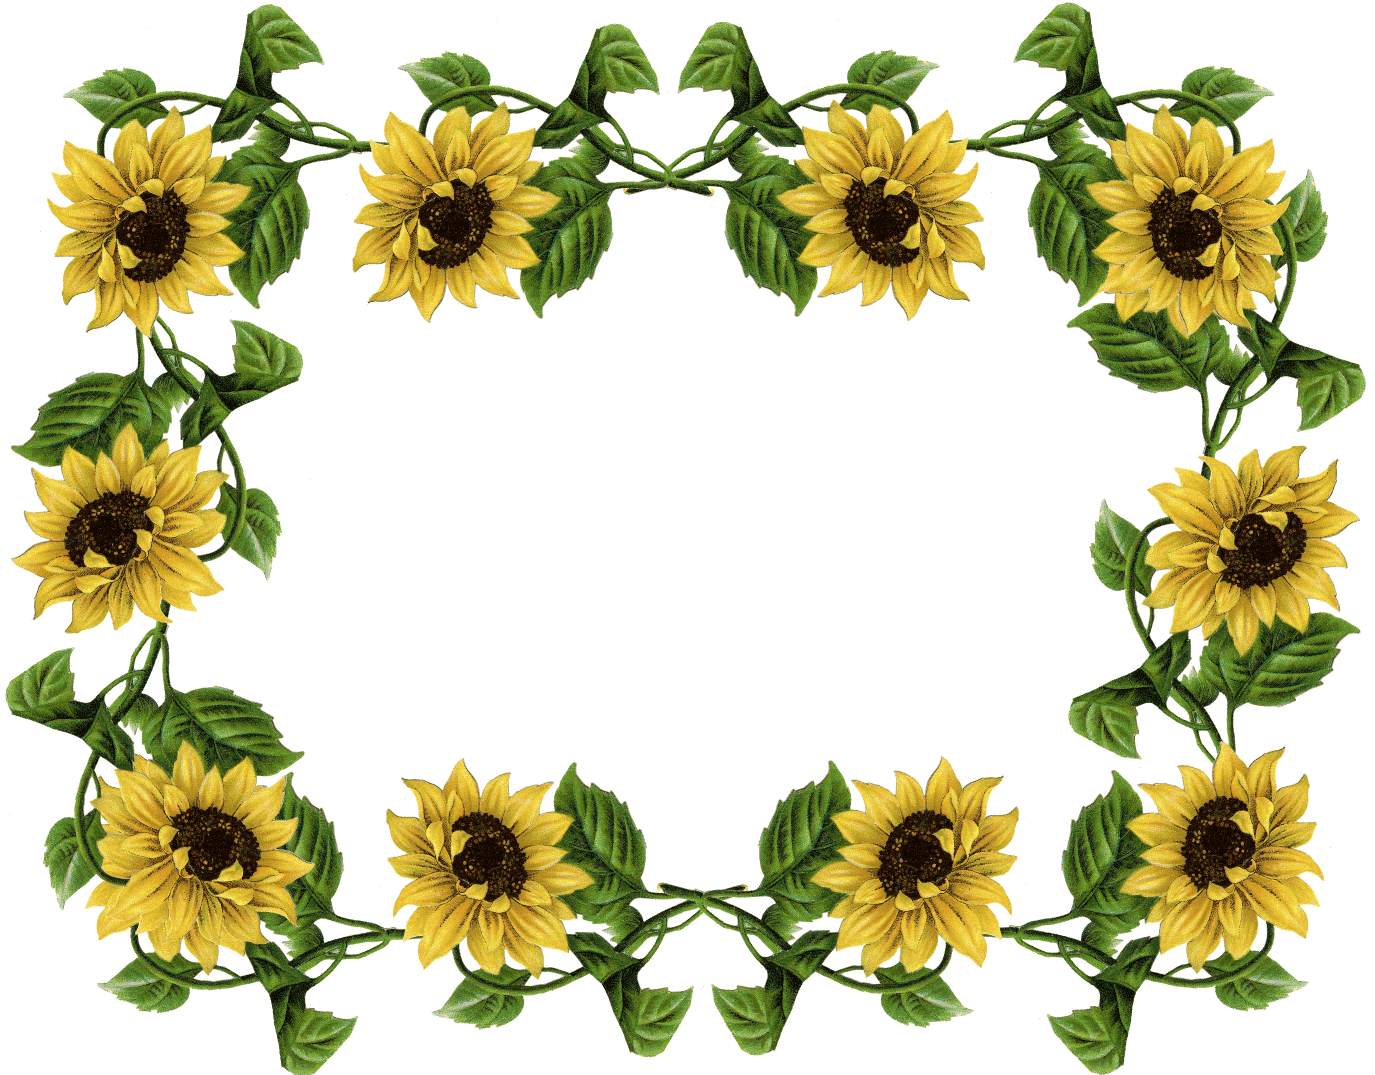 Sunflower Border Clip Art - Cliparts.co